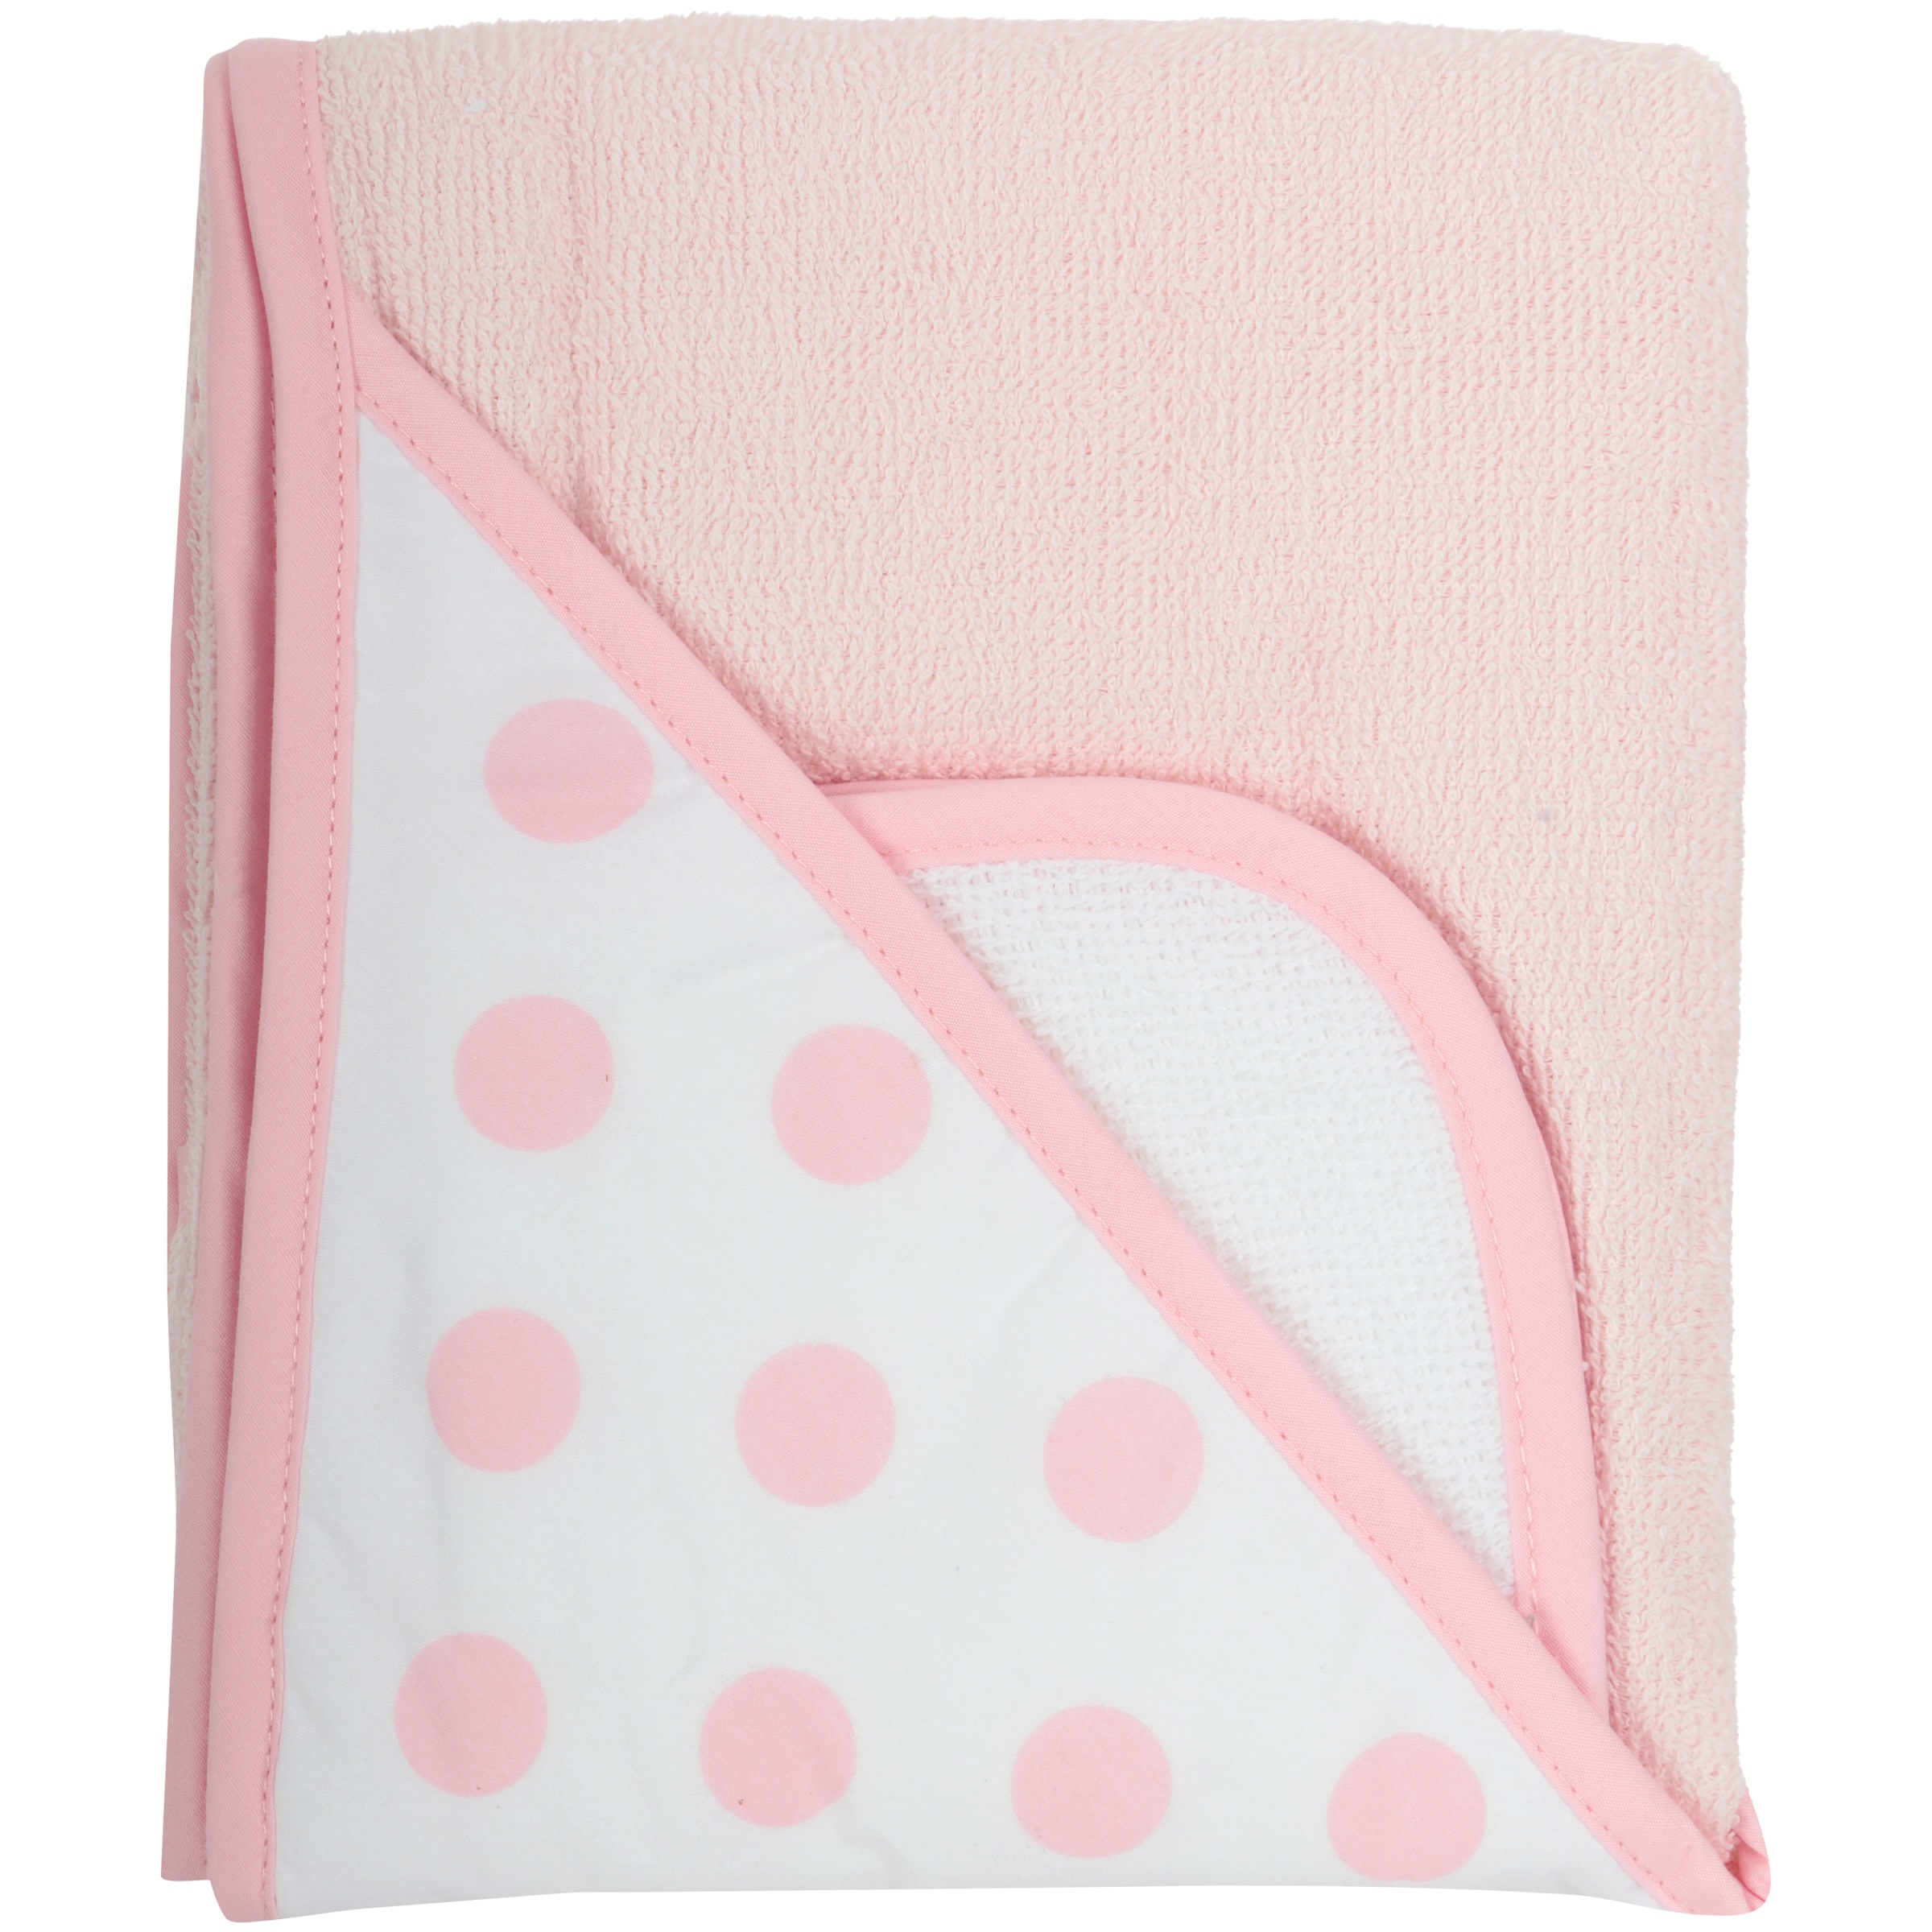 American Baby Company Hooded Towel & Washcloth Set 2 pc Pack by TL Care, Inc./American Baby CompanyA California Company